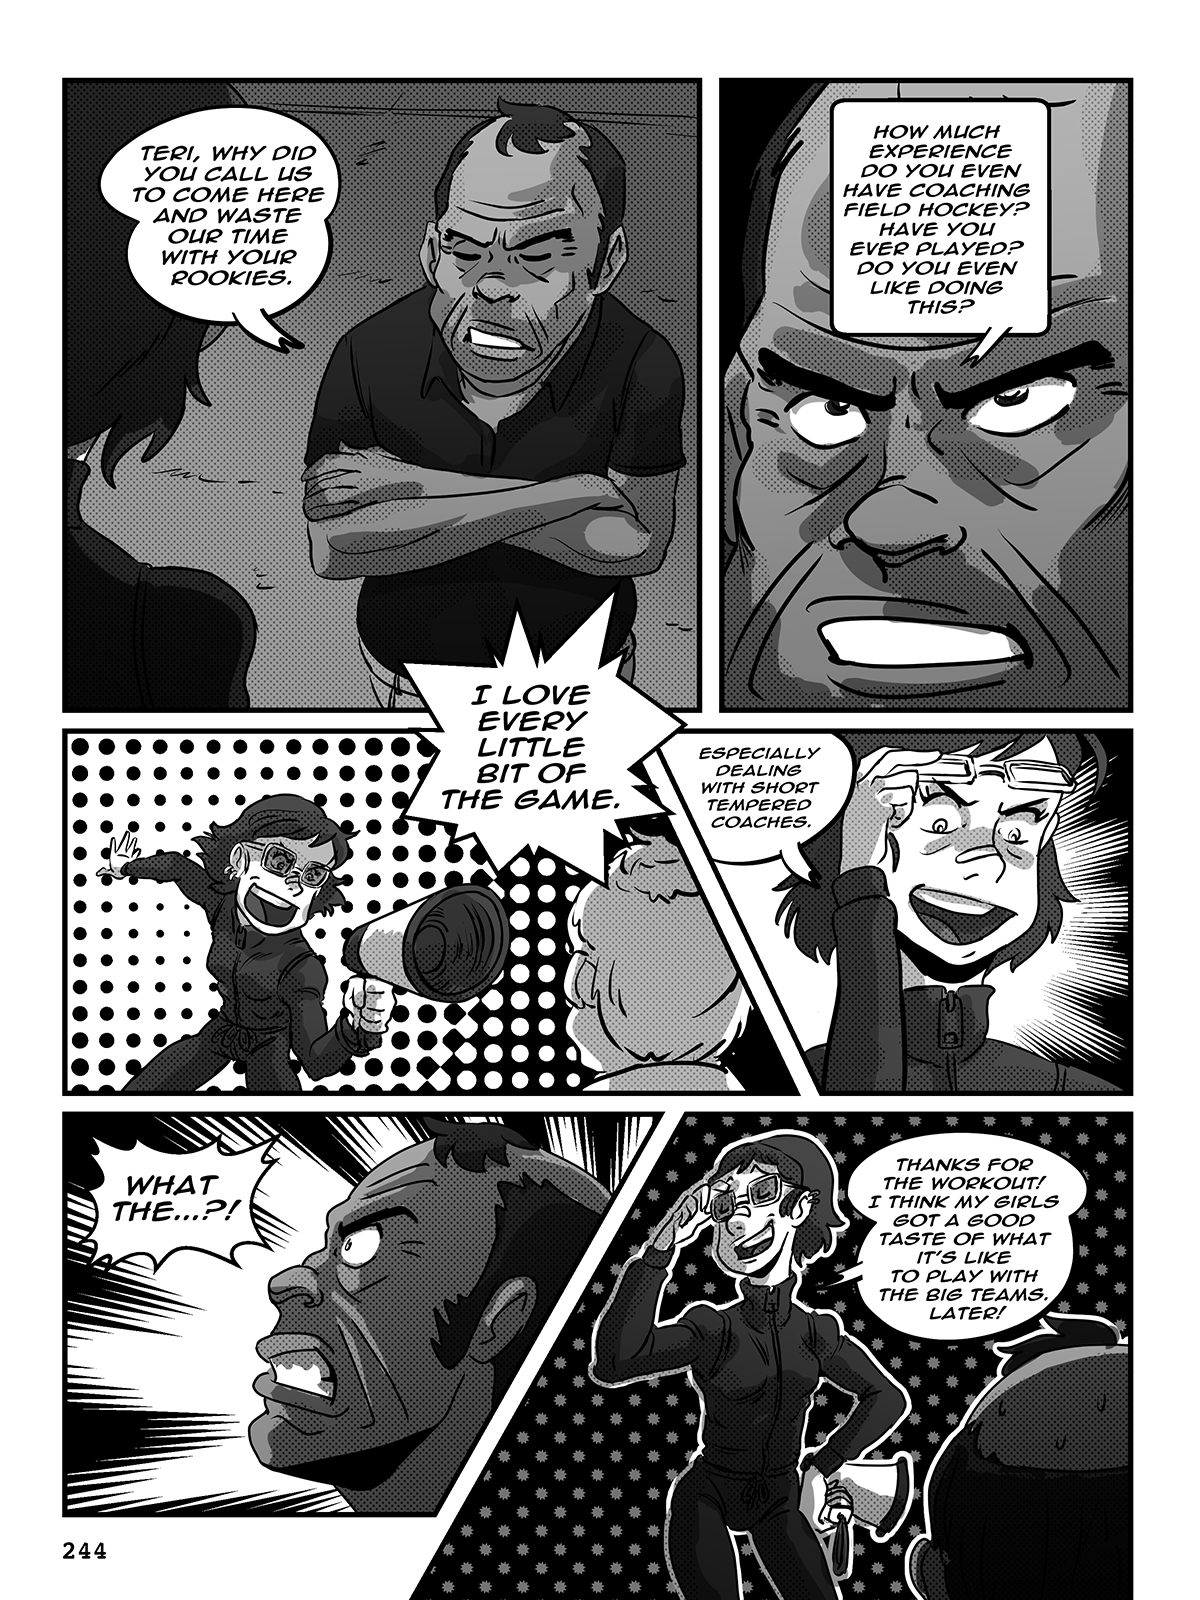 Hockey, Love, & GUTS! – Chapter 9 – Page 244